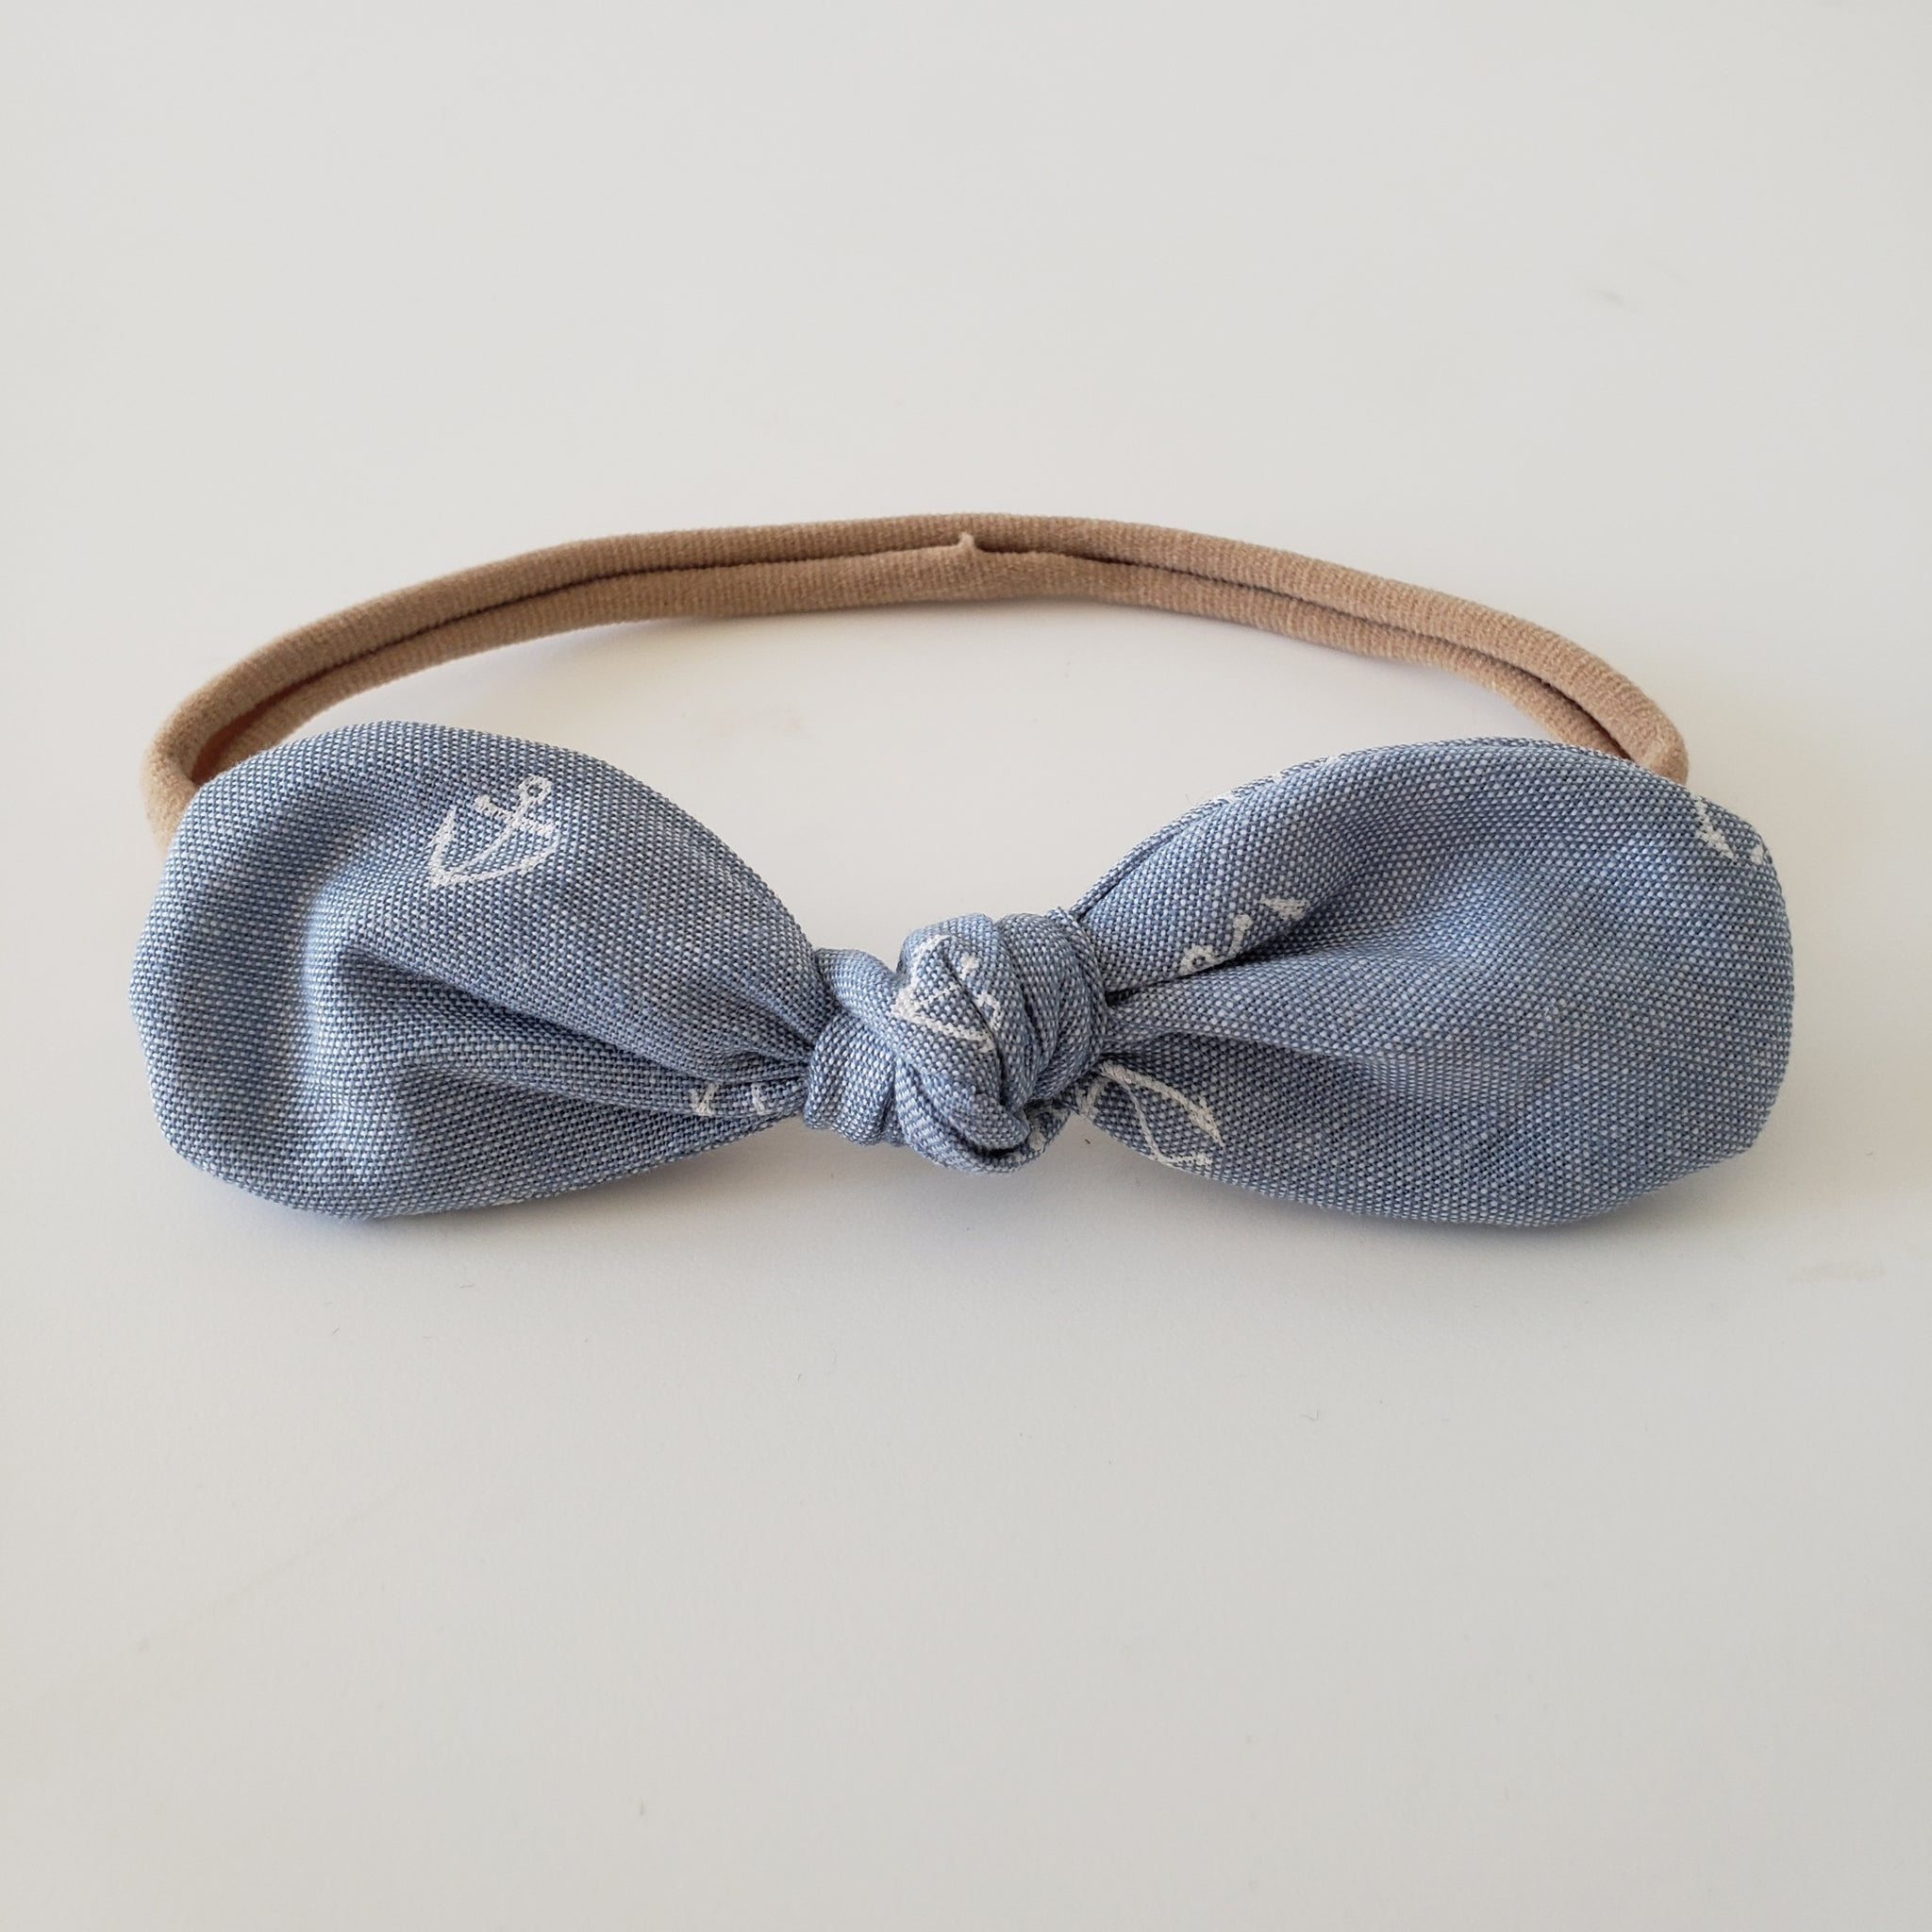 CHILDREN'S BOW HEADBAND - OFF THE HOOK